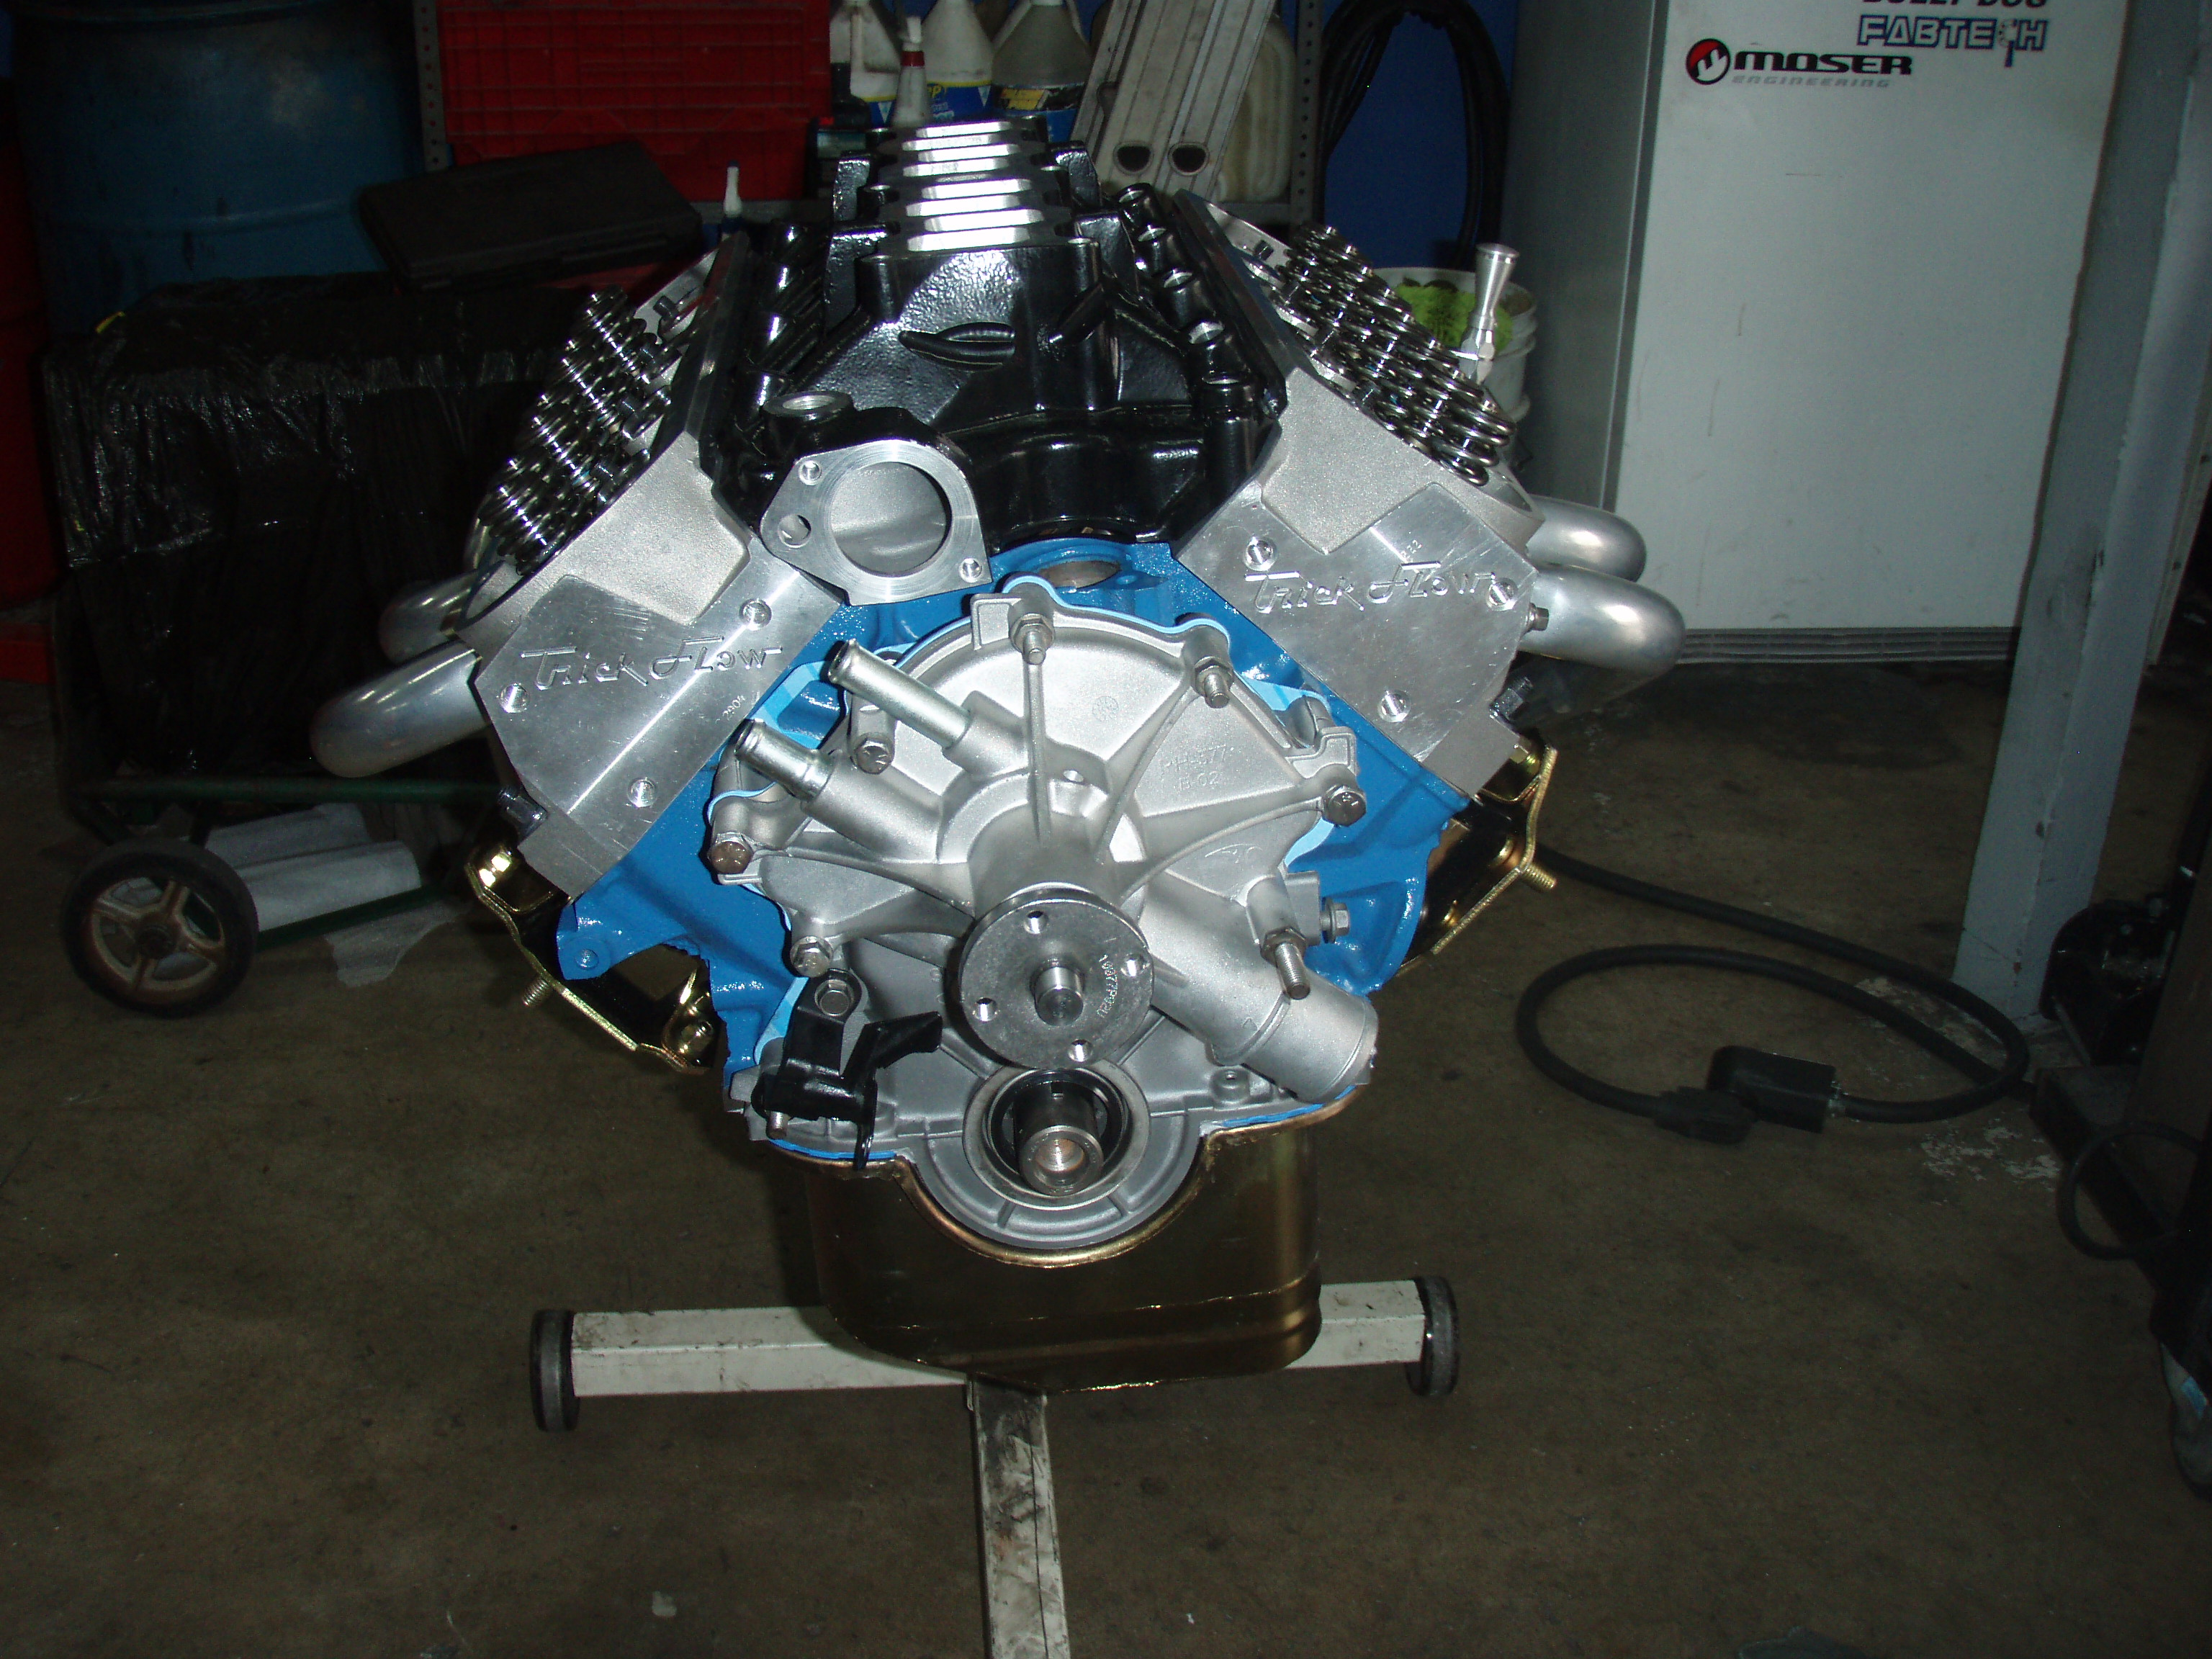 Click image for larger version  Name:Motor.jpg Views:72 Size:1.43 MB ID:190937